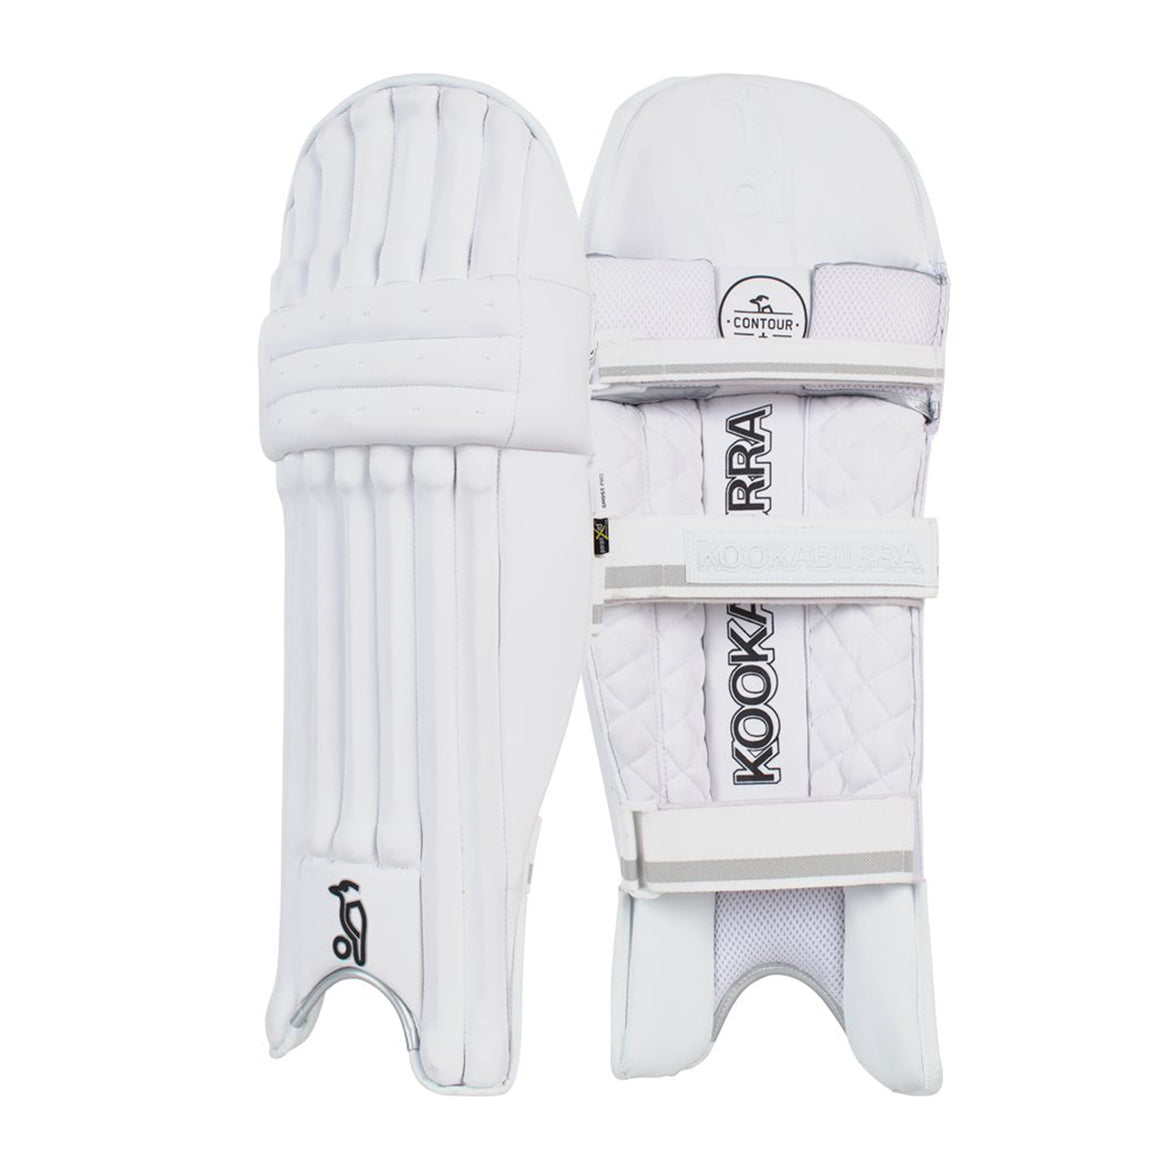 Ghost 3.2 R/H Batting Pads for Kids in White & Silver